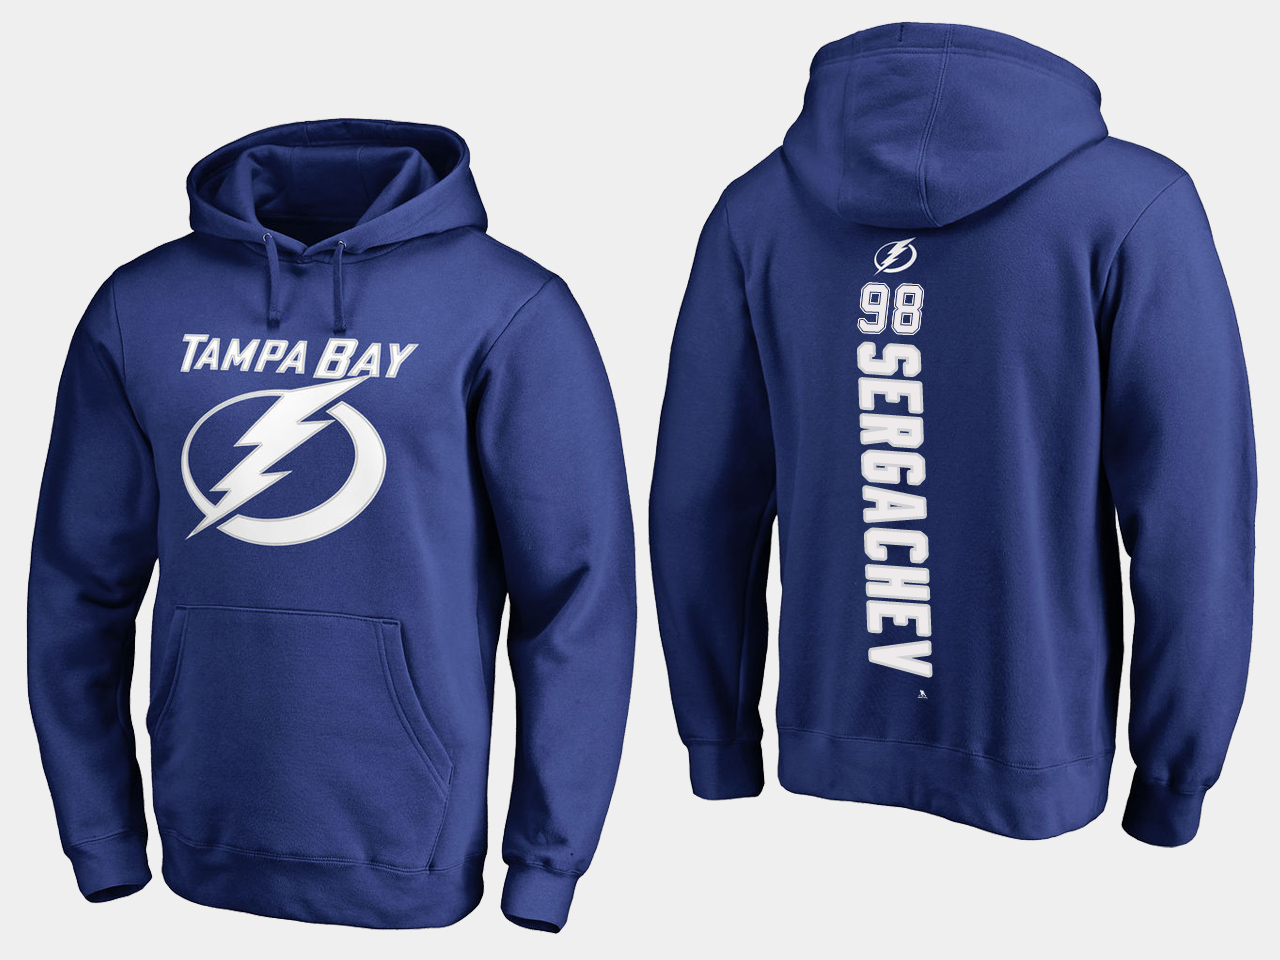 NHL Men adidas Tampa Bay Lightning 98 Sergachev blue hoodie